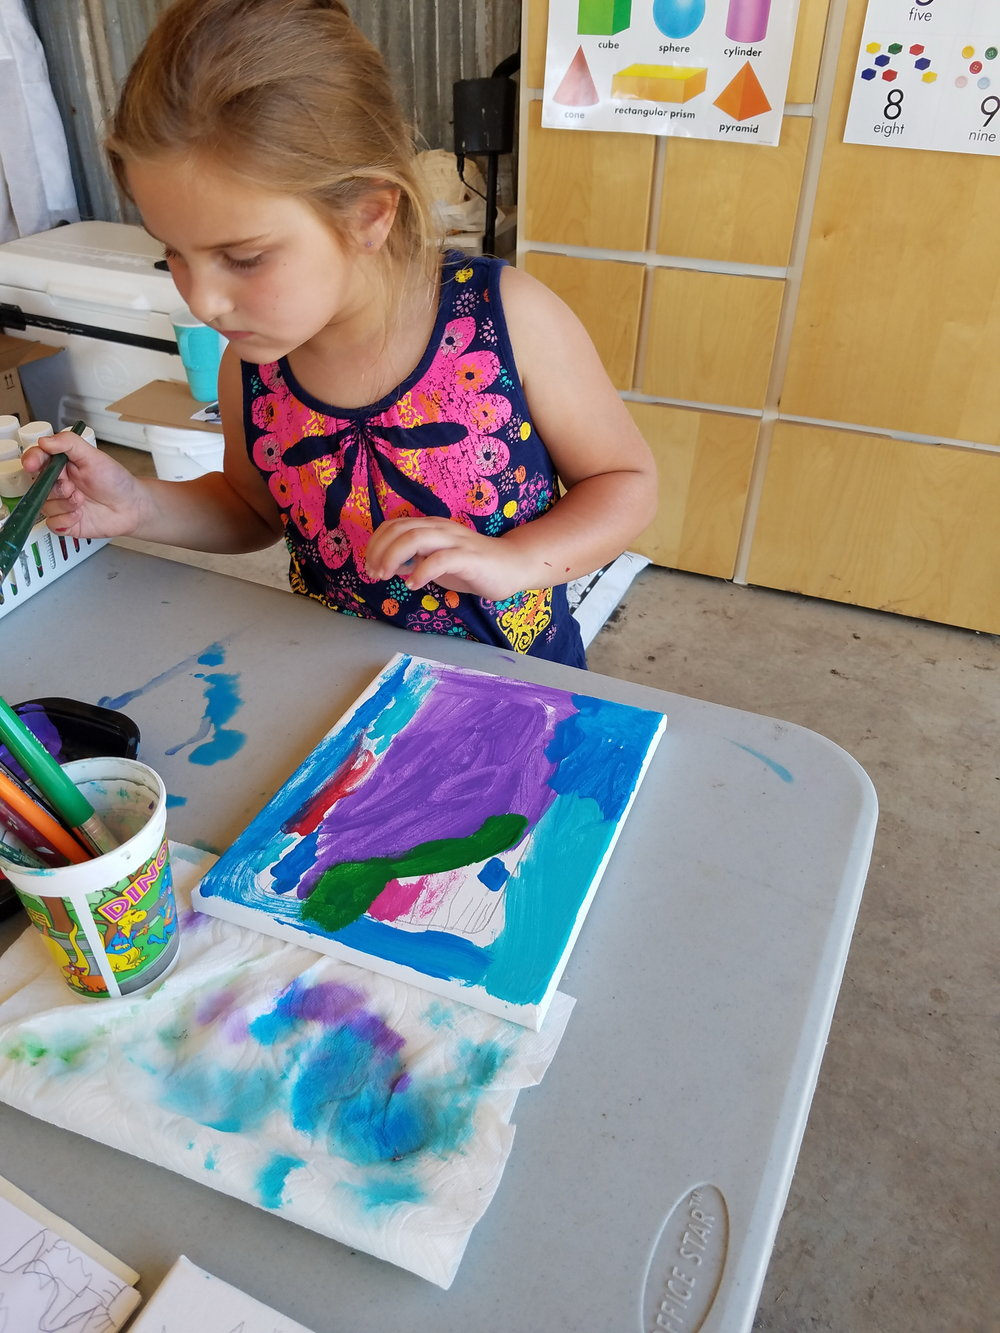 """Farmer, I think I would like another color. Farmer Amy, I think I would like another color again."" Farmer Amy is so glad she kept asking for more colors. What a beautiful painting!"